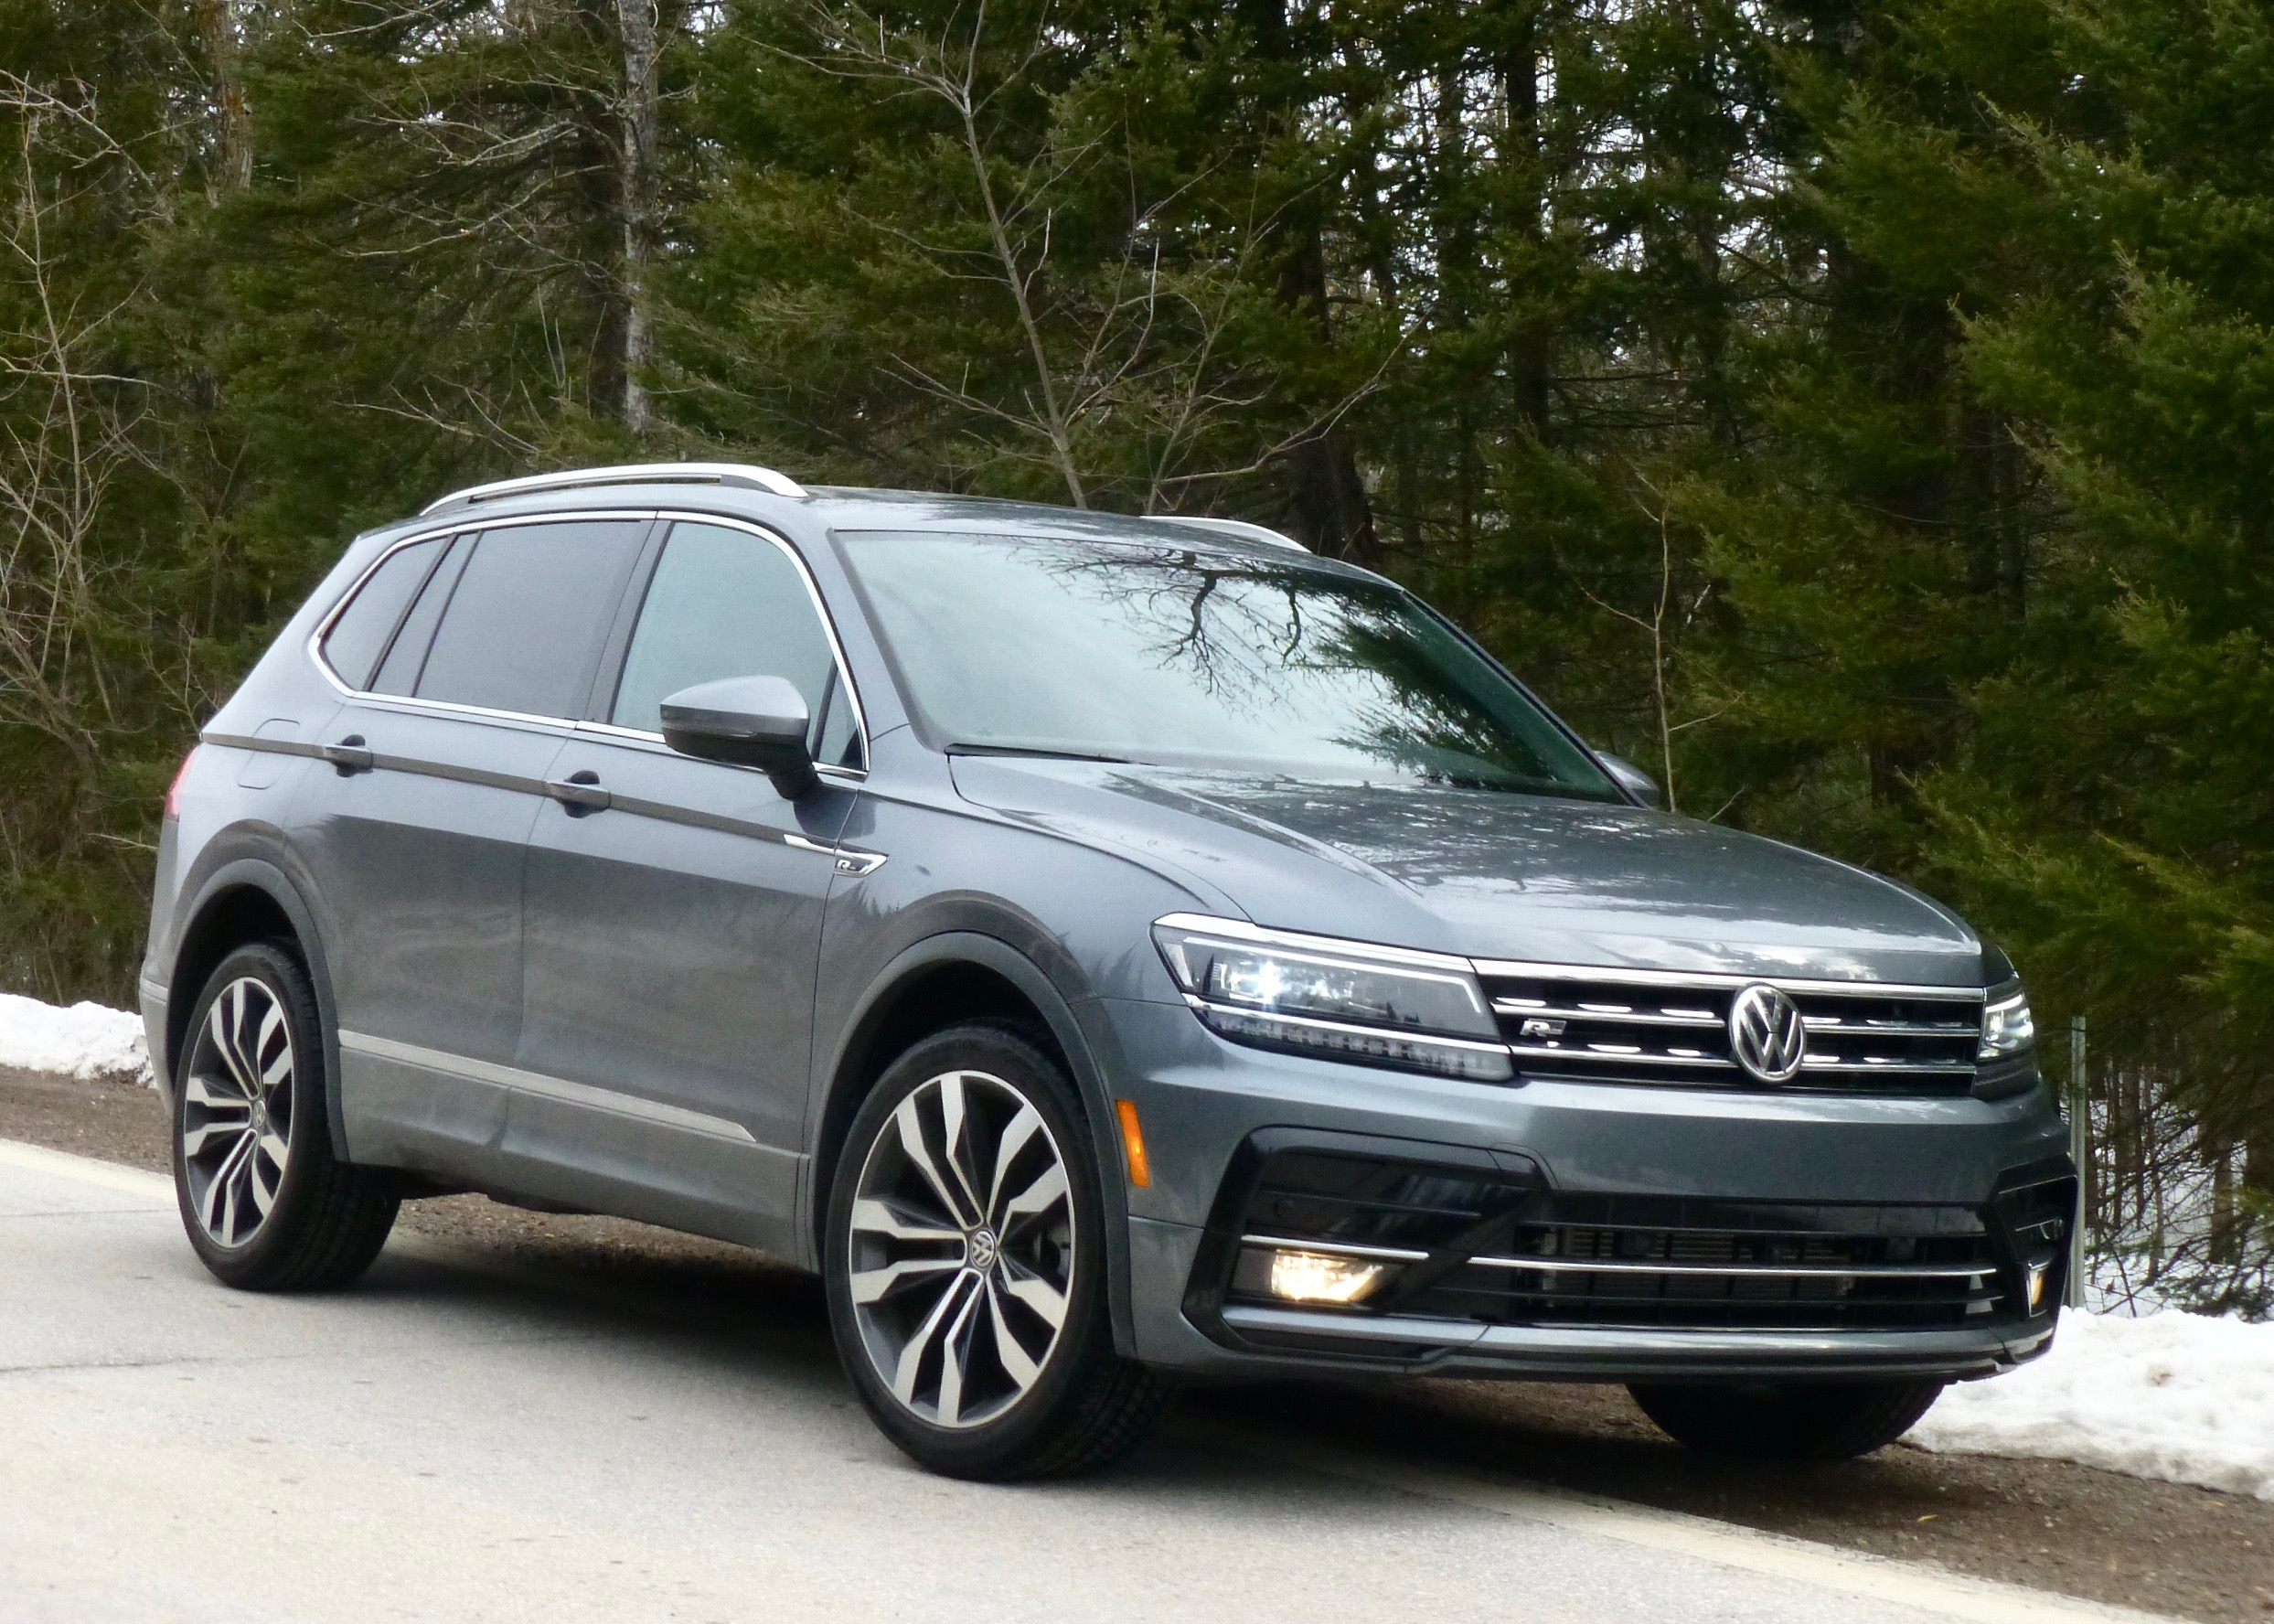 Longer Tiguan has optional third-row seat but retains style, solid feel for 2019.